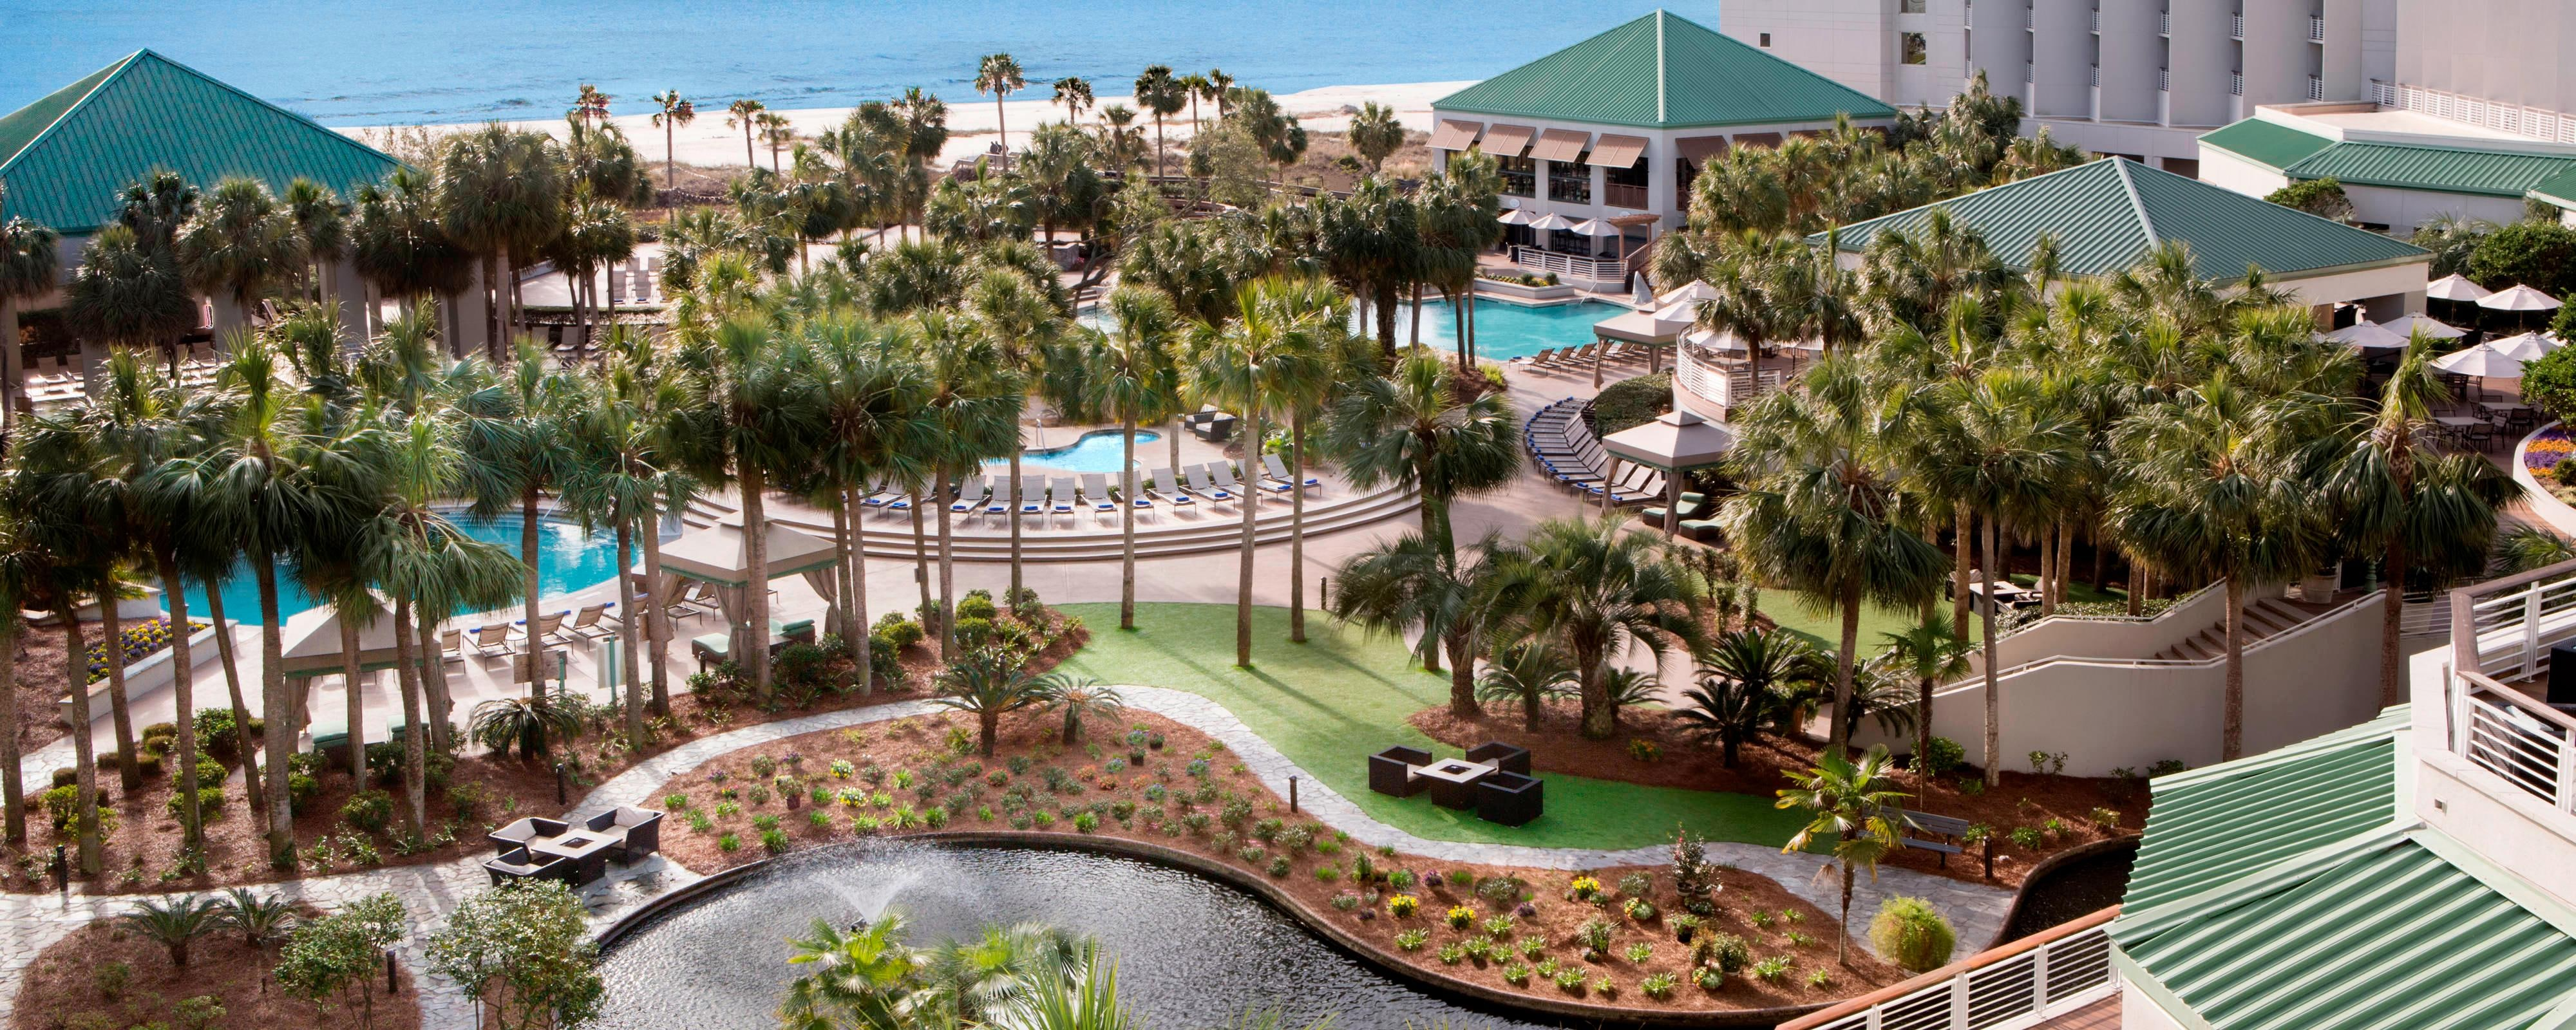 Map and directions to The Westin Hilton Head Island Resort & Spa ...